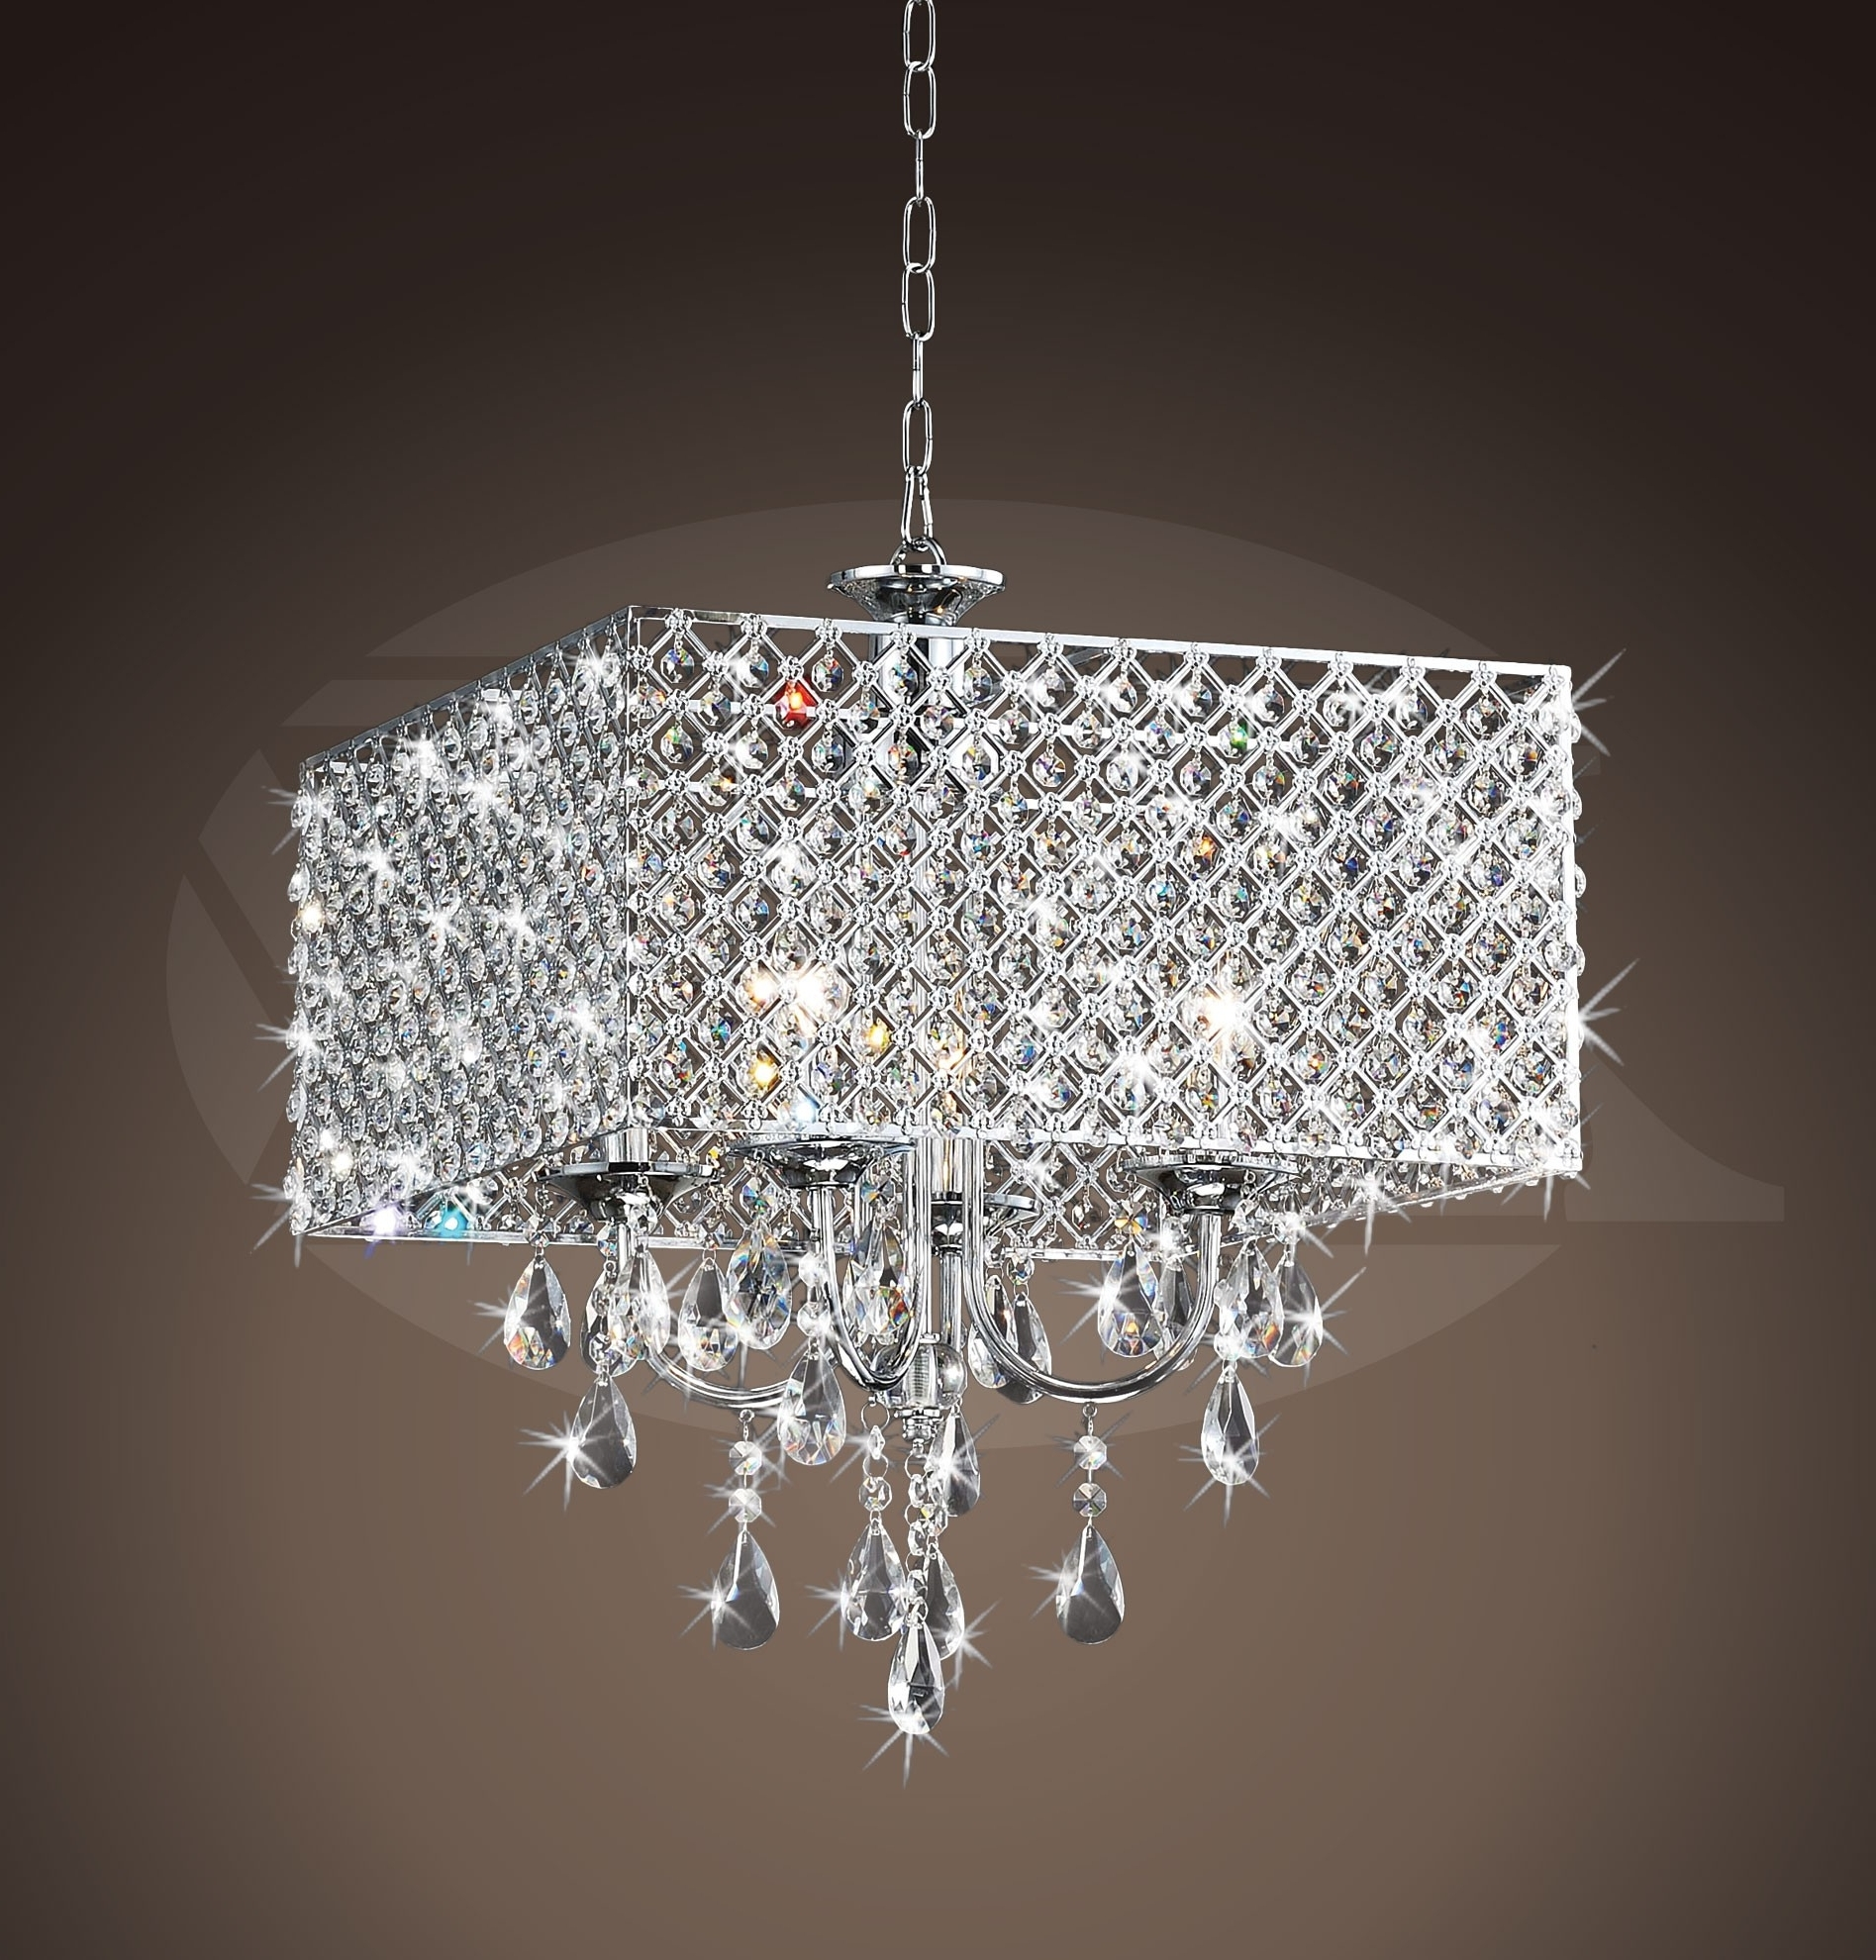 """Best And Newest Rosemary Elegant Crystal Chrome 4 Light Square Chandelier (16""""h X 17 With Regard To 4 Light Chrome Crystal Chandeliers (View 8 of 15)"""